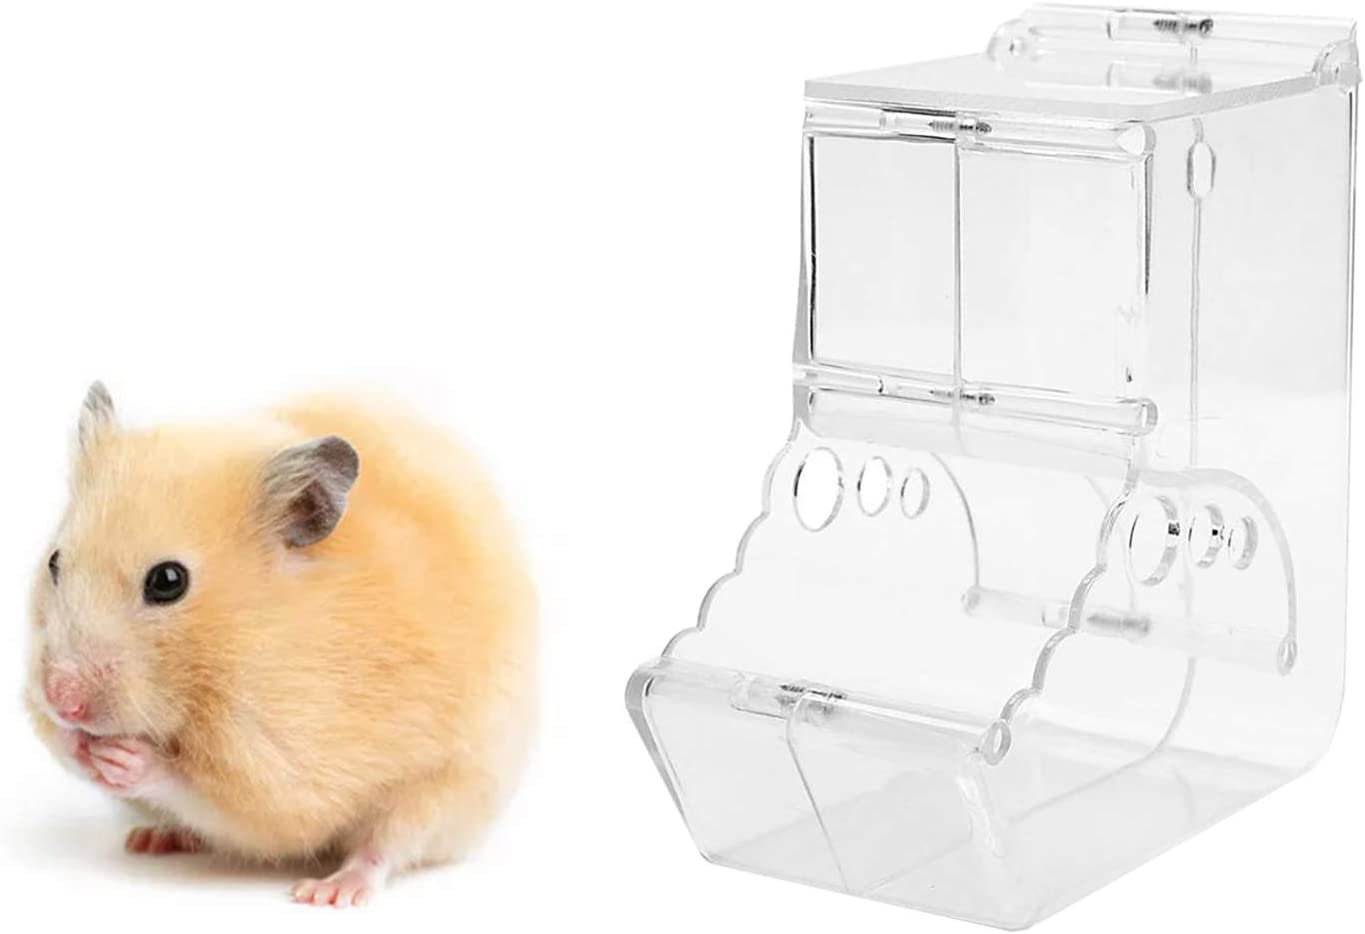 Qielie 400ML Hamster Feeder,Automatic Food Dispenser Plastic Bowl ,Suitable for Feeding Hamsters, Guinea Pigs, Pigeons, Parrots, Hedgehog,and Other Small Animals